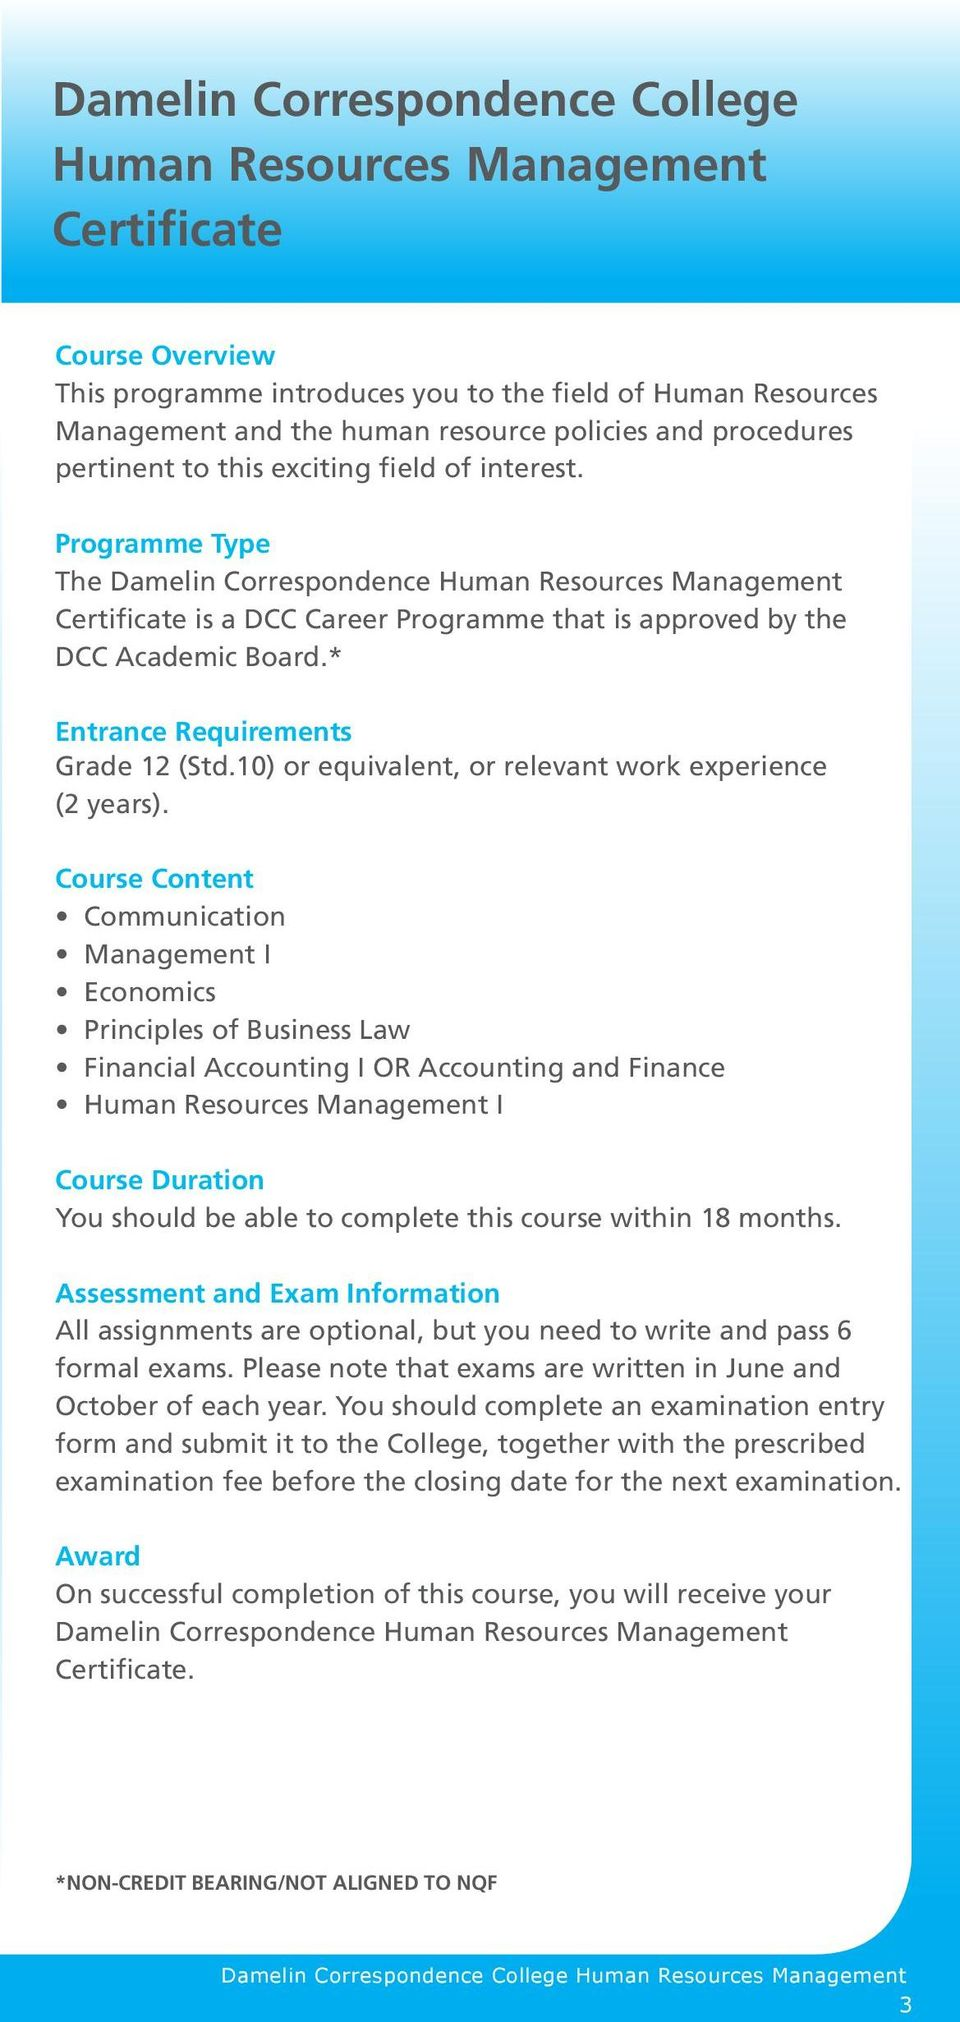 Programme Type The Damelin Correspondence Human Resources Management Certificate is a DCC Career Programme that is approved by the DCC Academic Board.* Entrance Requirements Grade 12 (Std.